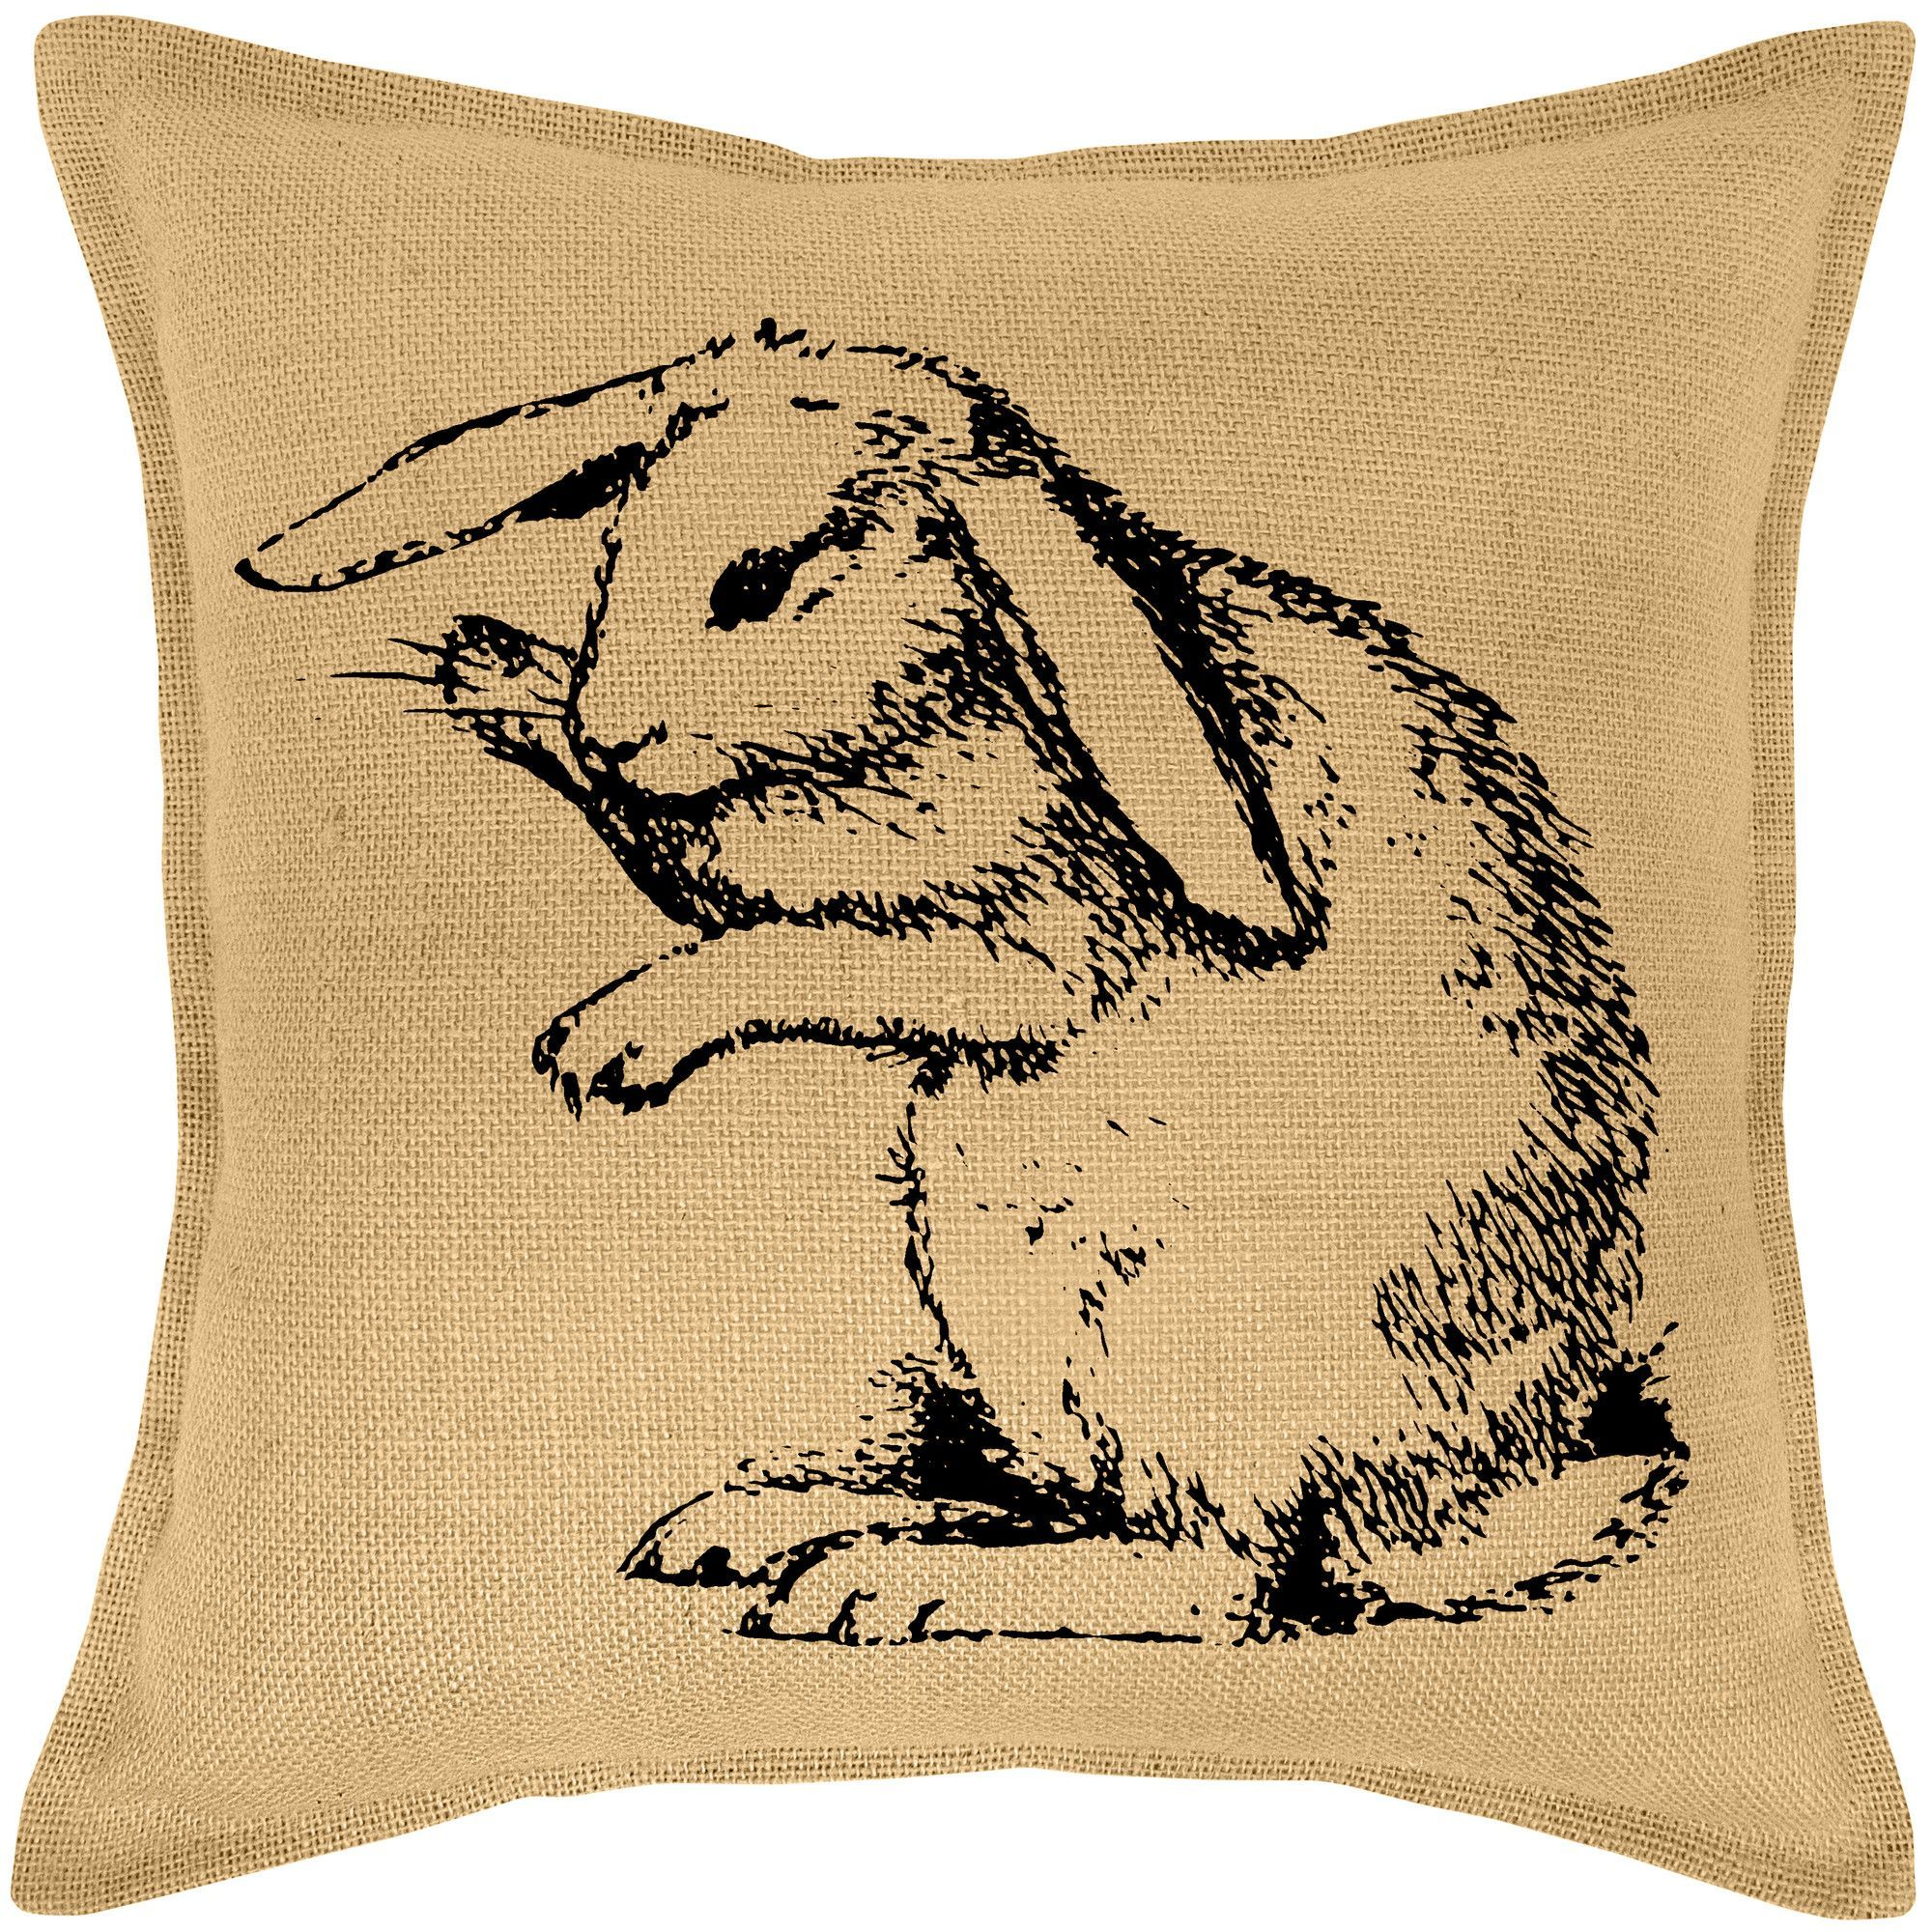 Bunny Burlap Throw Pillow